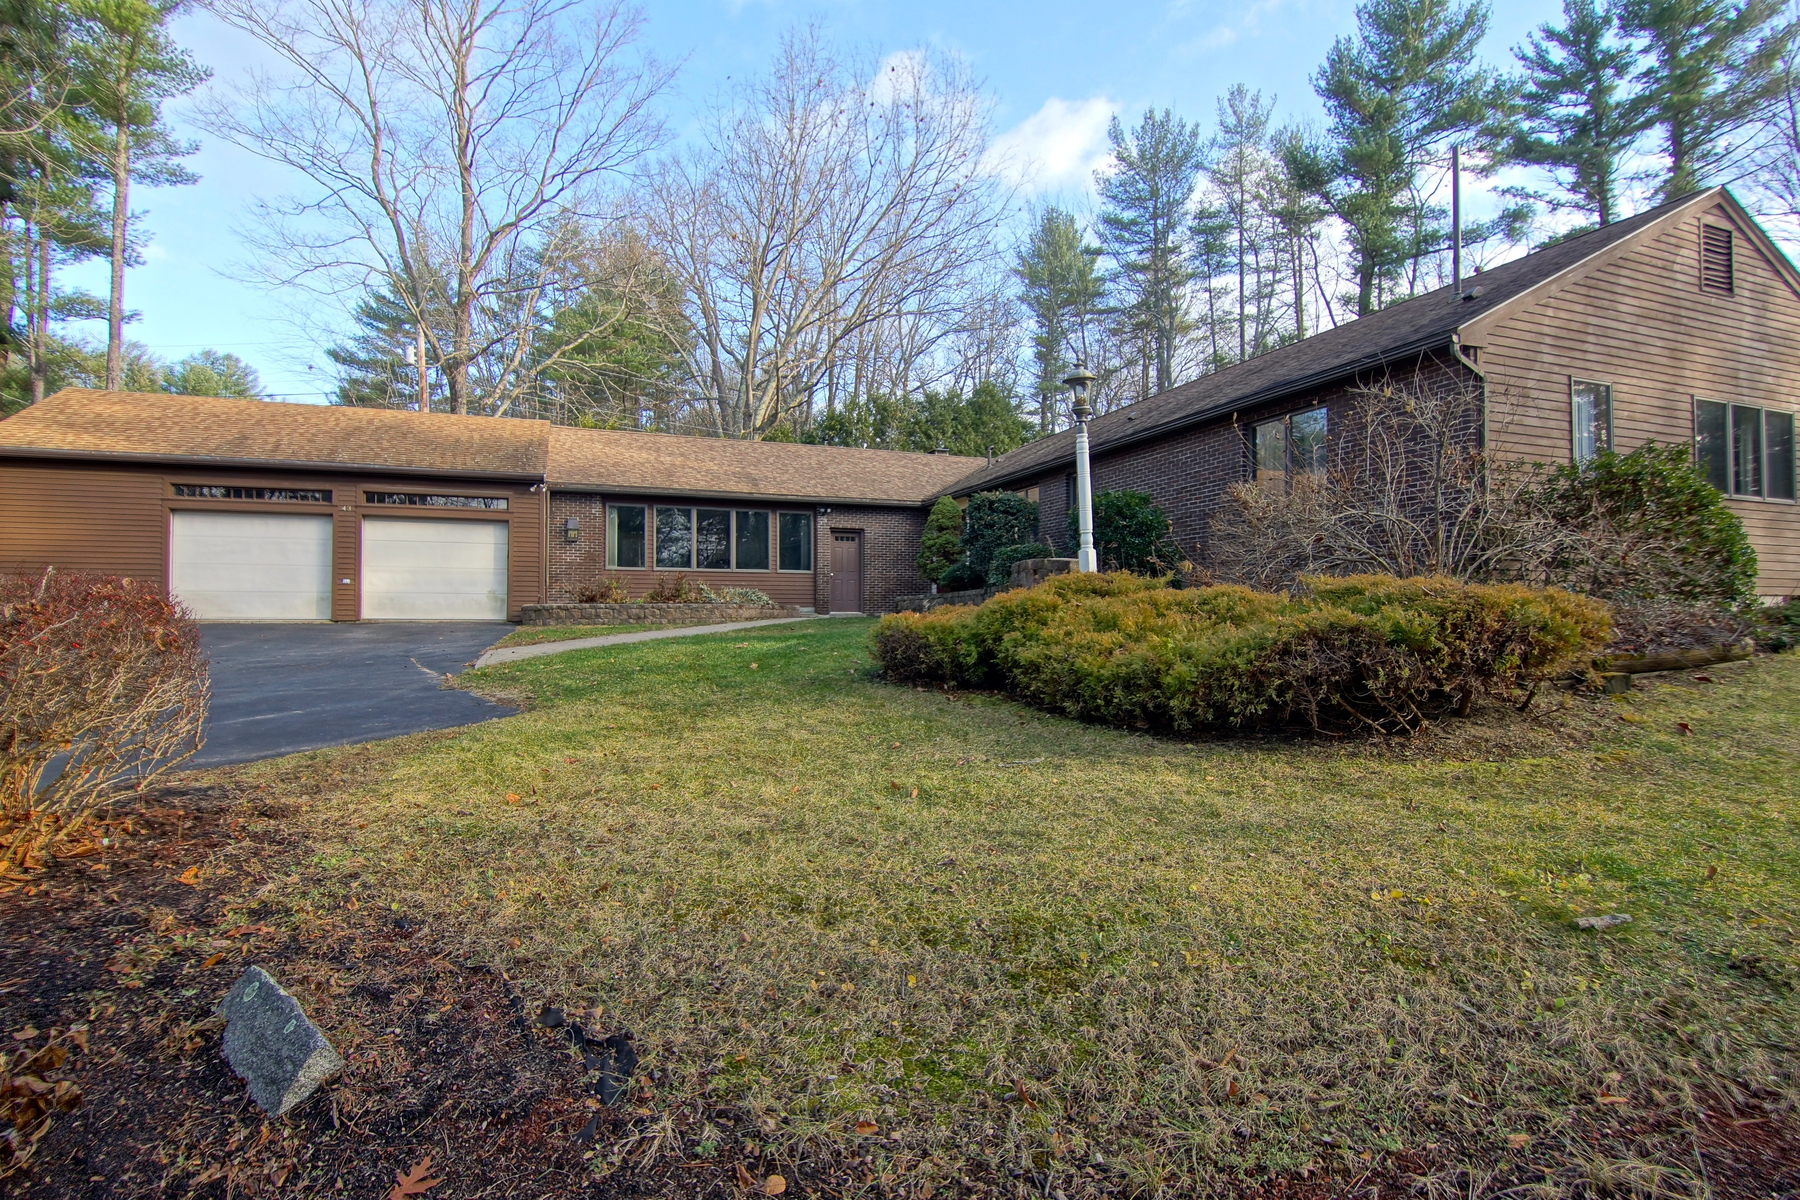 Single Family Home for Sale at Easy Living in this Spacious Single Story Home 43 Ashbrook Drive Hampton, New Hampshire, 03842 United States